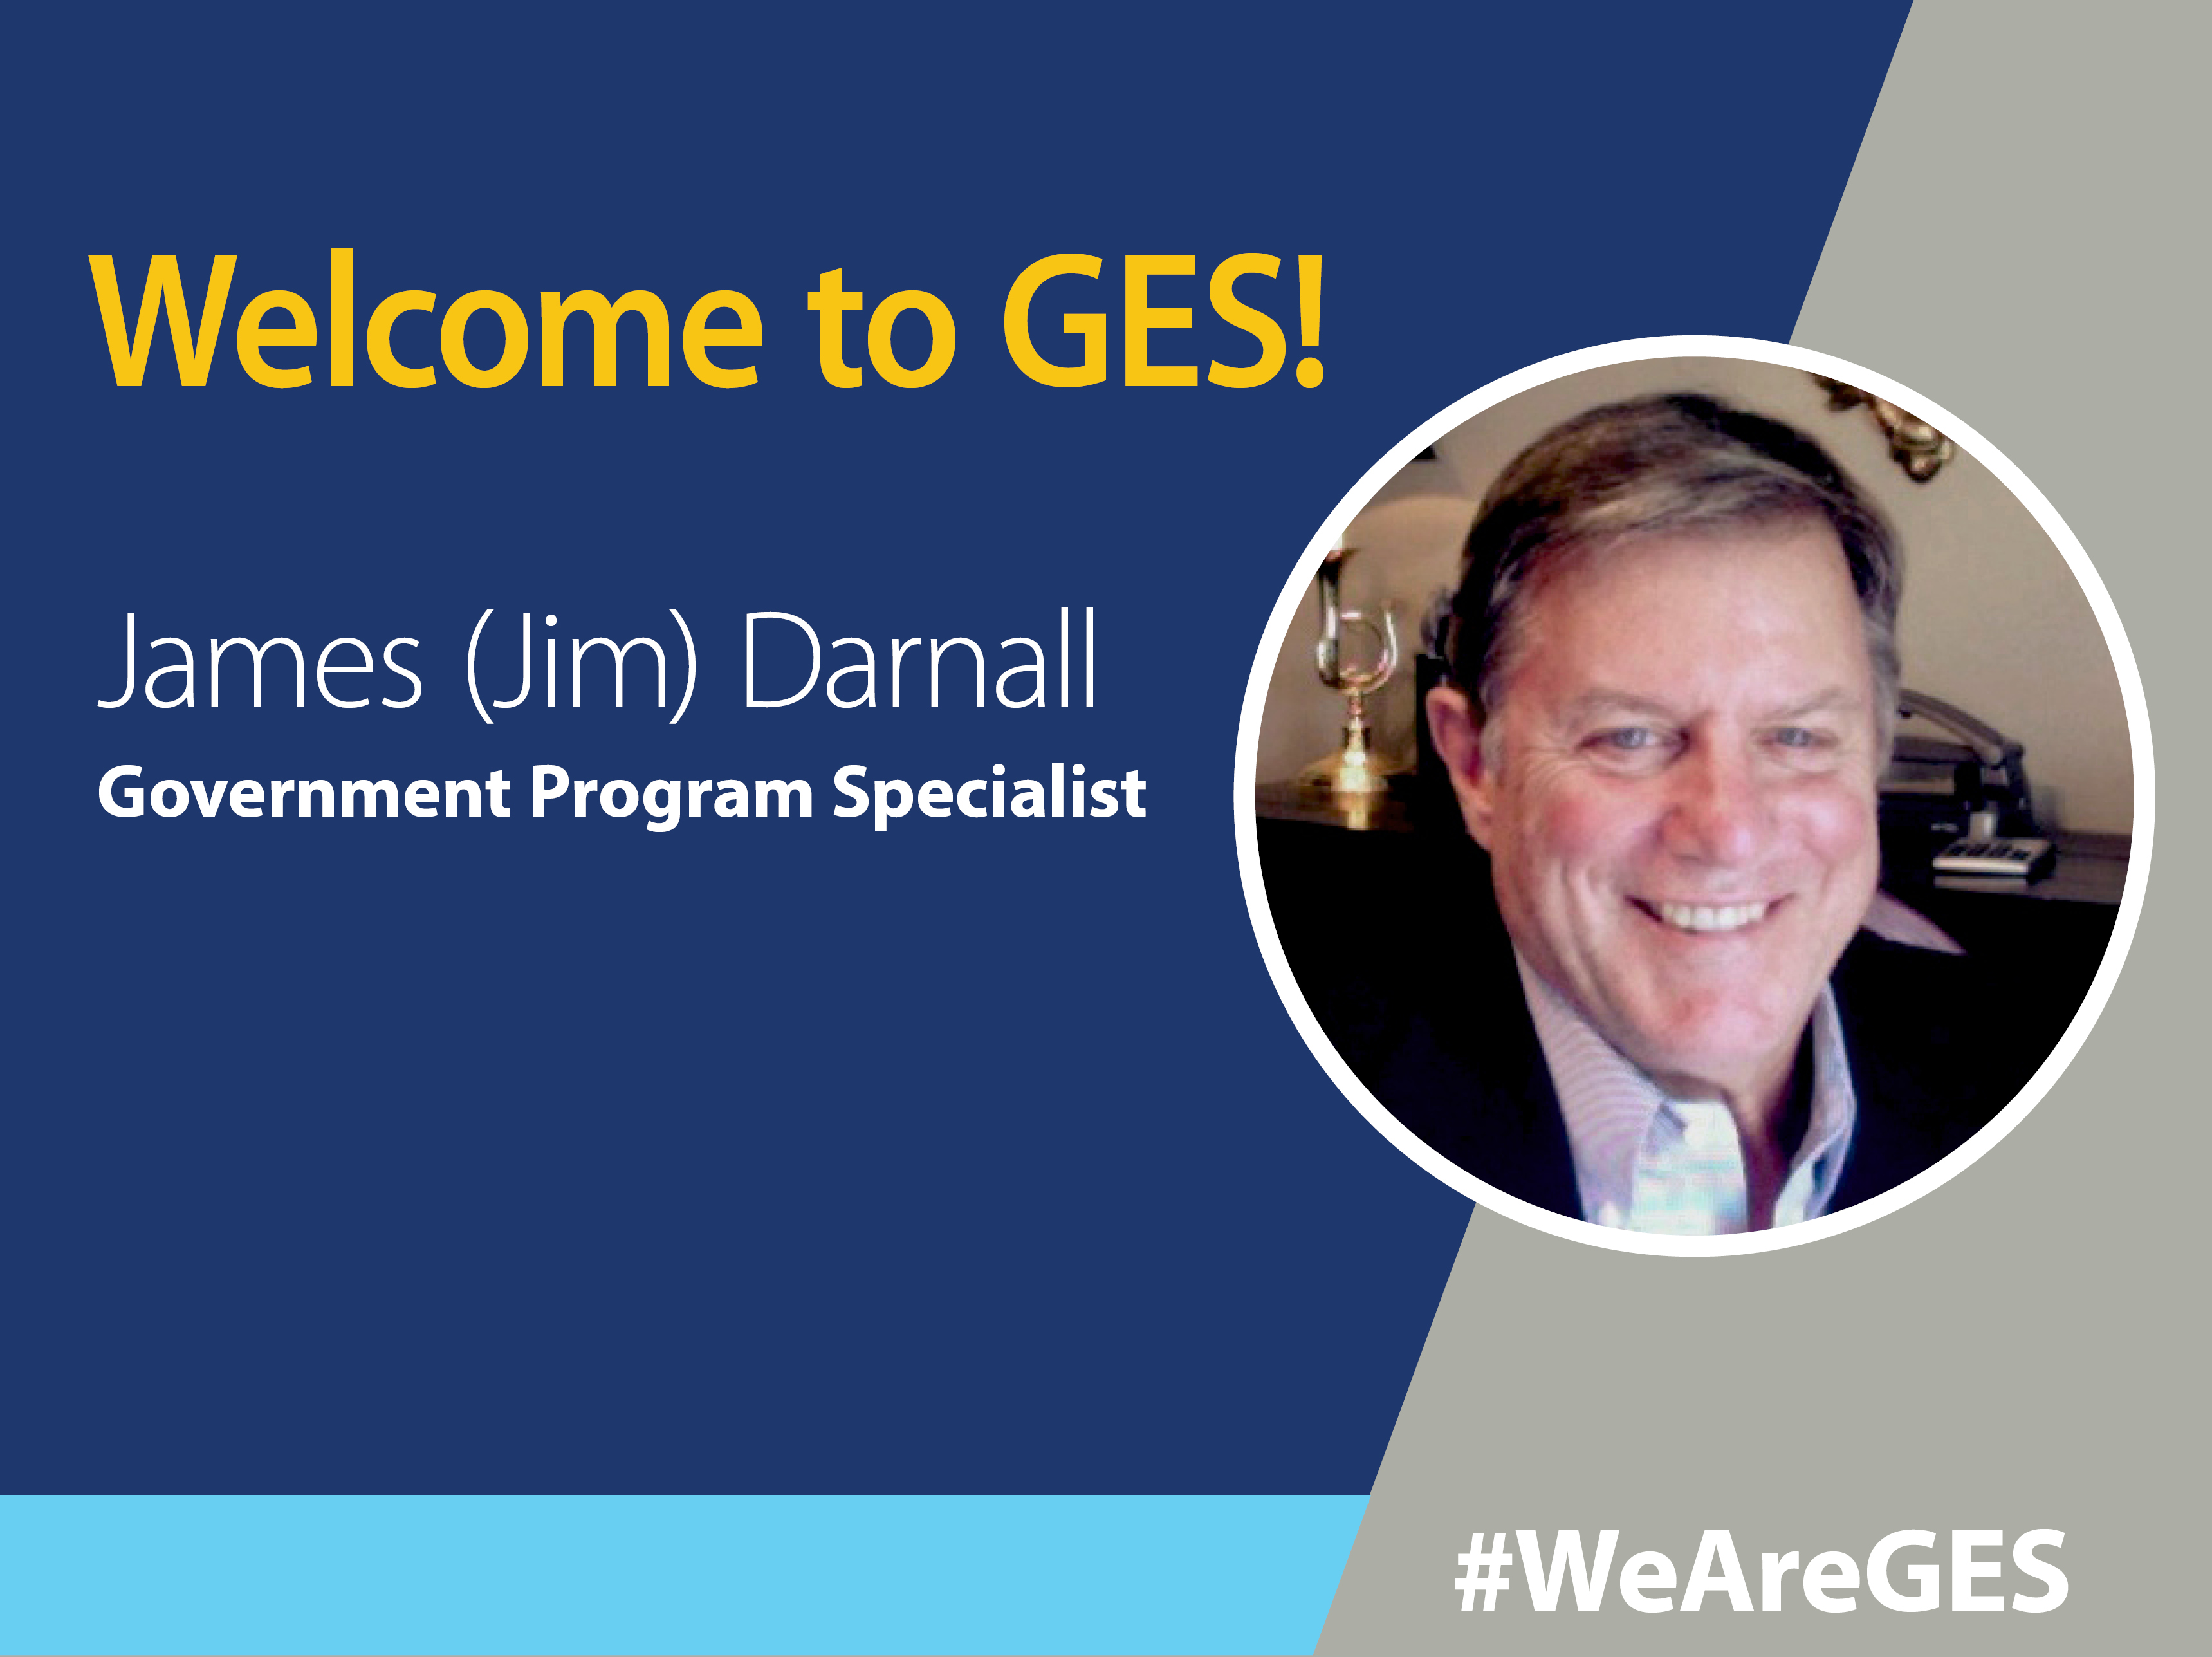 Jim Darnall, GES Government Program Specialist